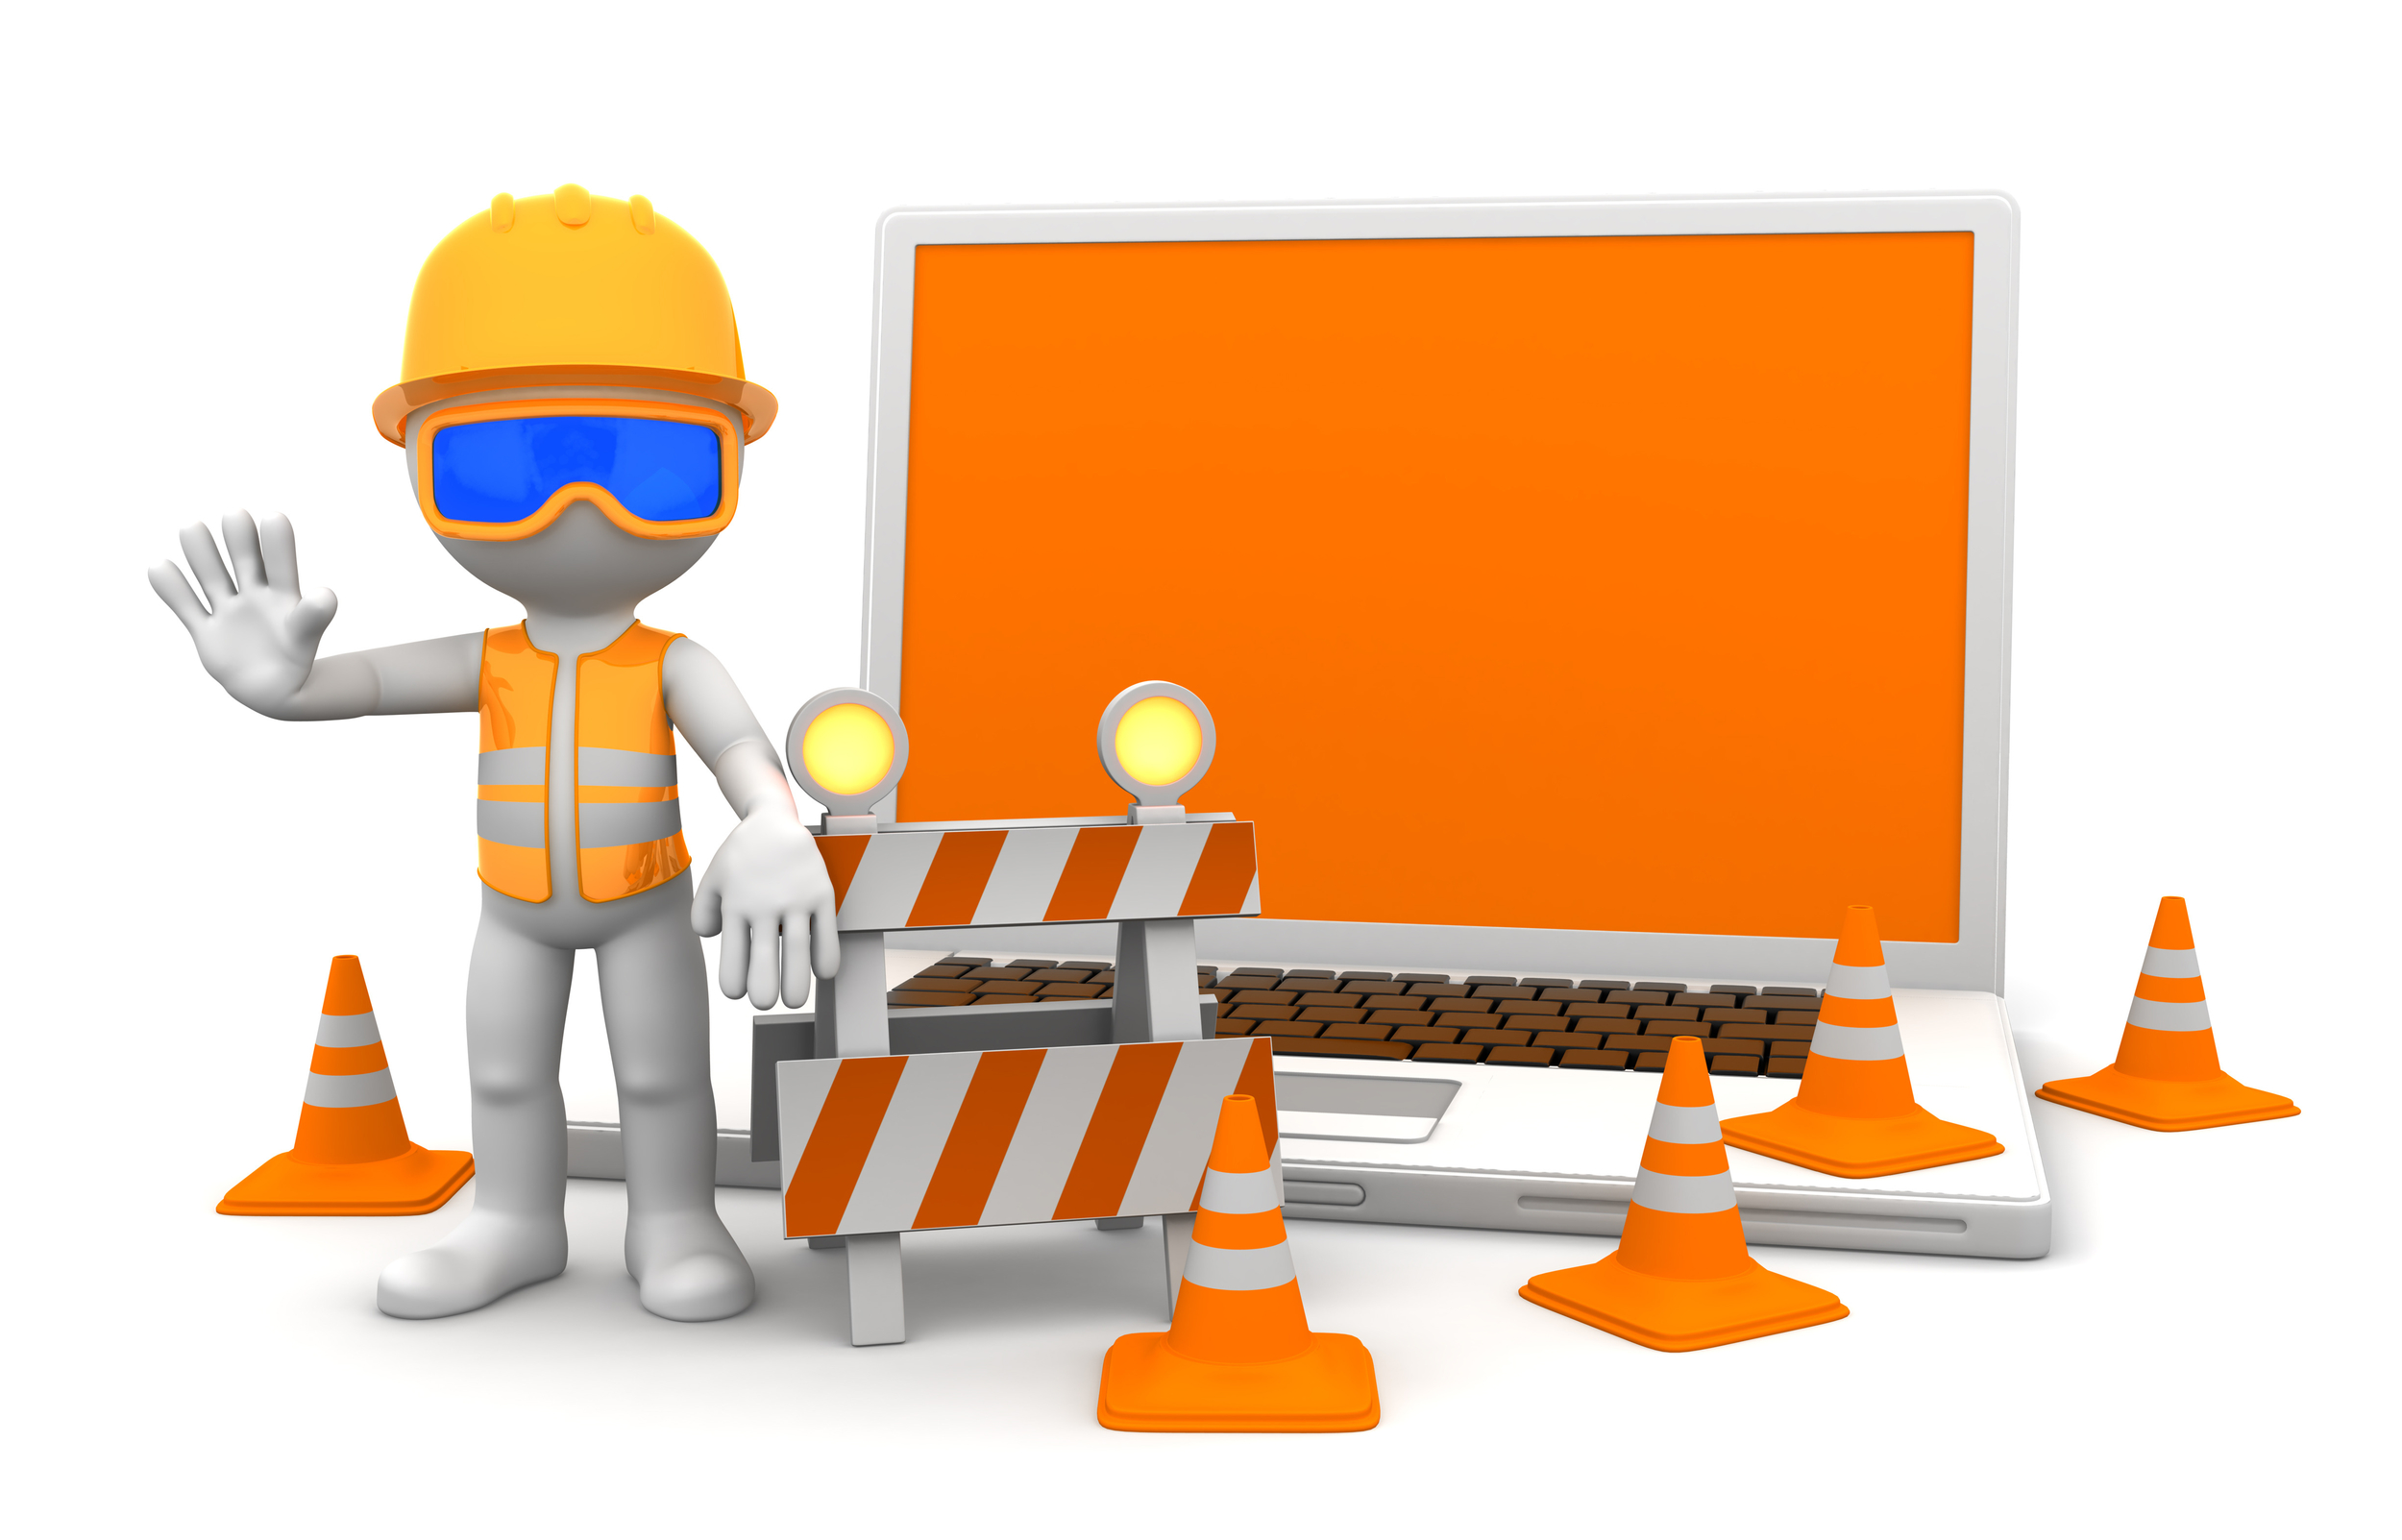 industrial-worker-with-laptop_f1d5XcCd.jpg